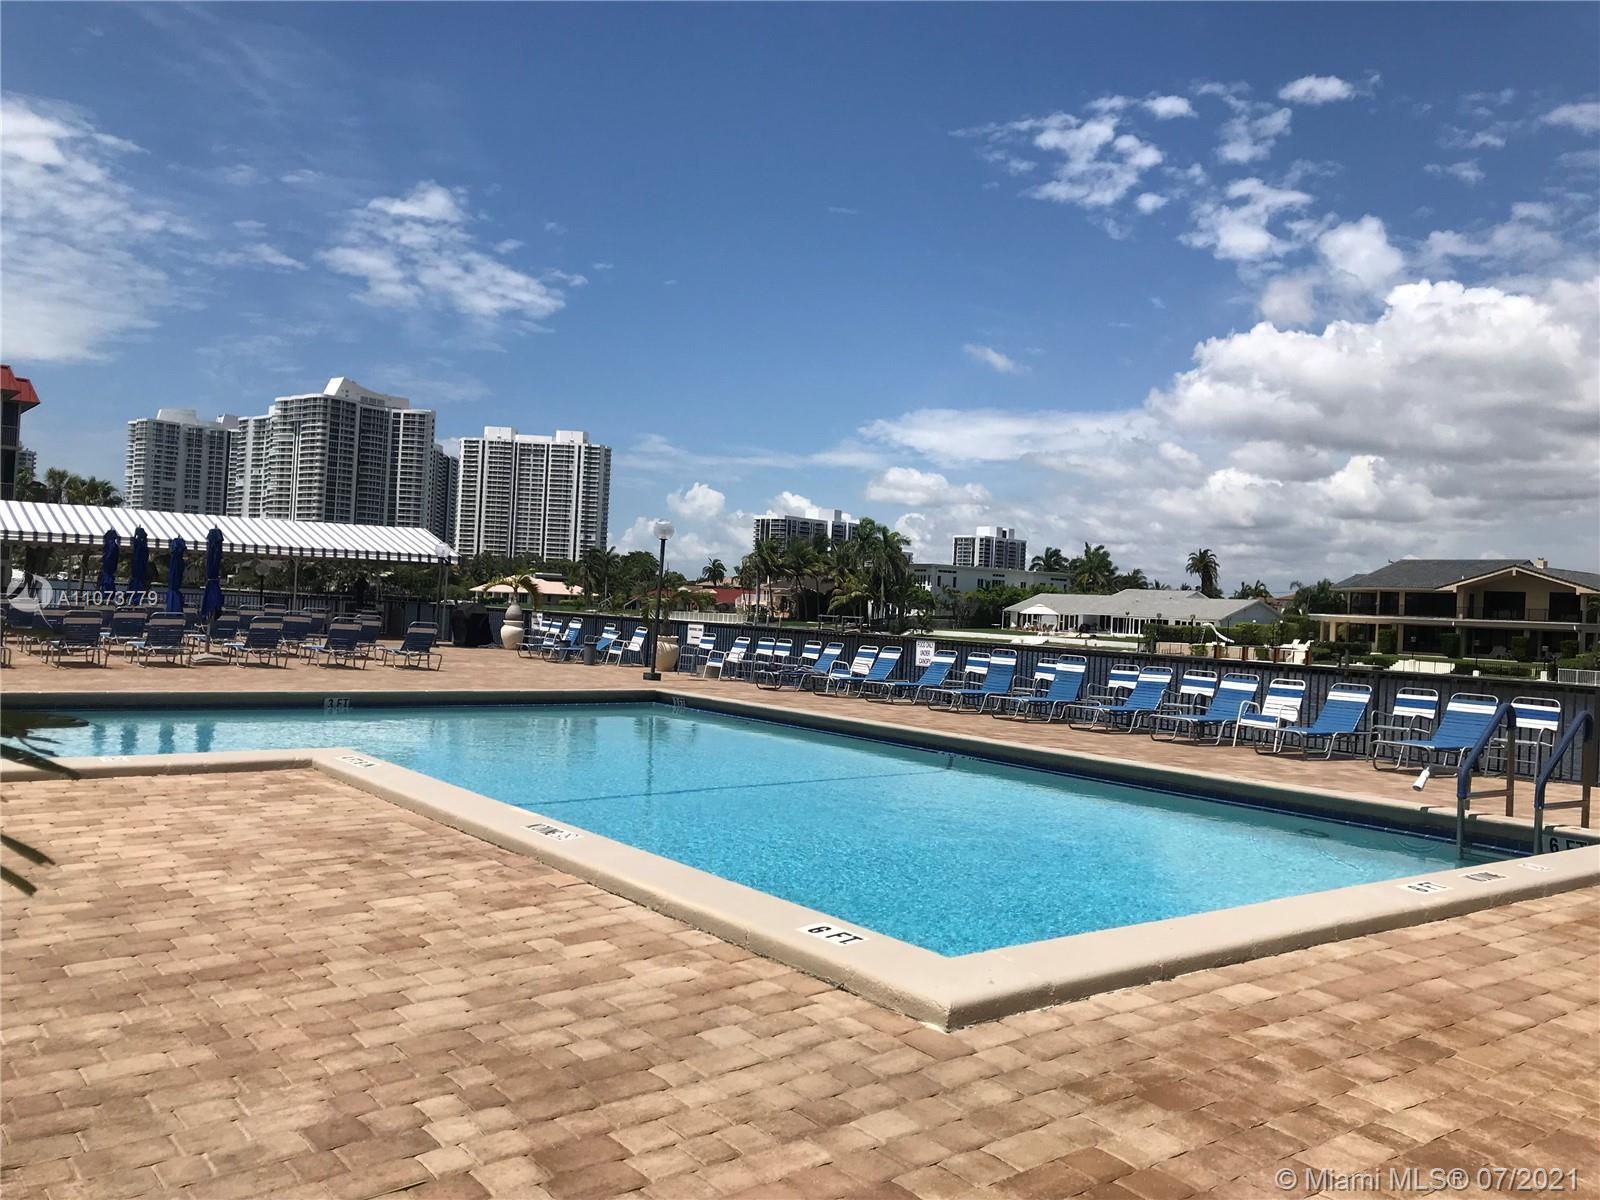 STUNNING VIEWS!! 2BED/2BATH PENTHOUSE !!BEAUTIFULLY KEPT THIS PENTHOUSE OFFERS TILES THROUGHOUT WHOL